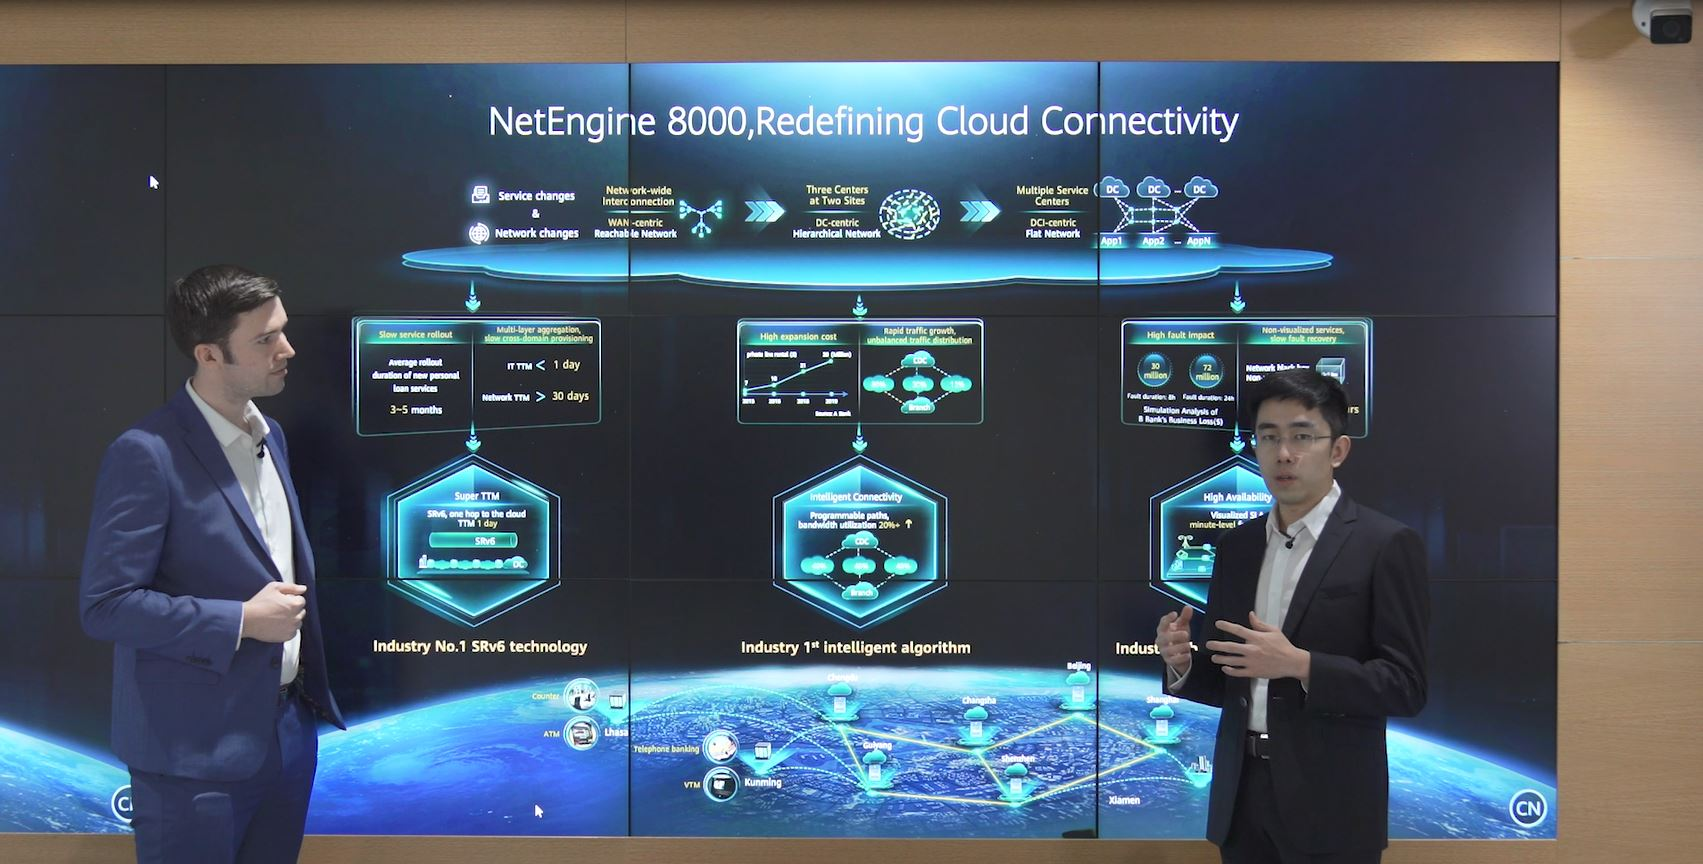 NetEngine 8000: Redefining Cloud Connectivity